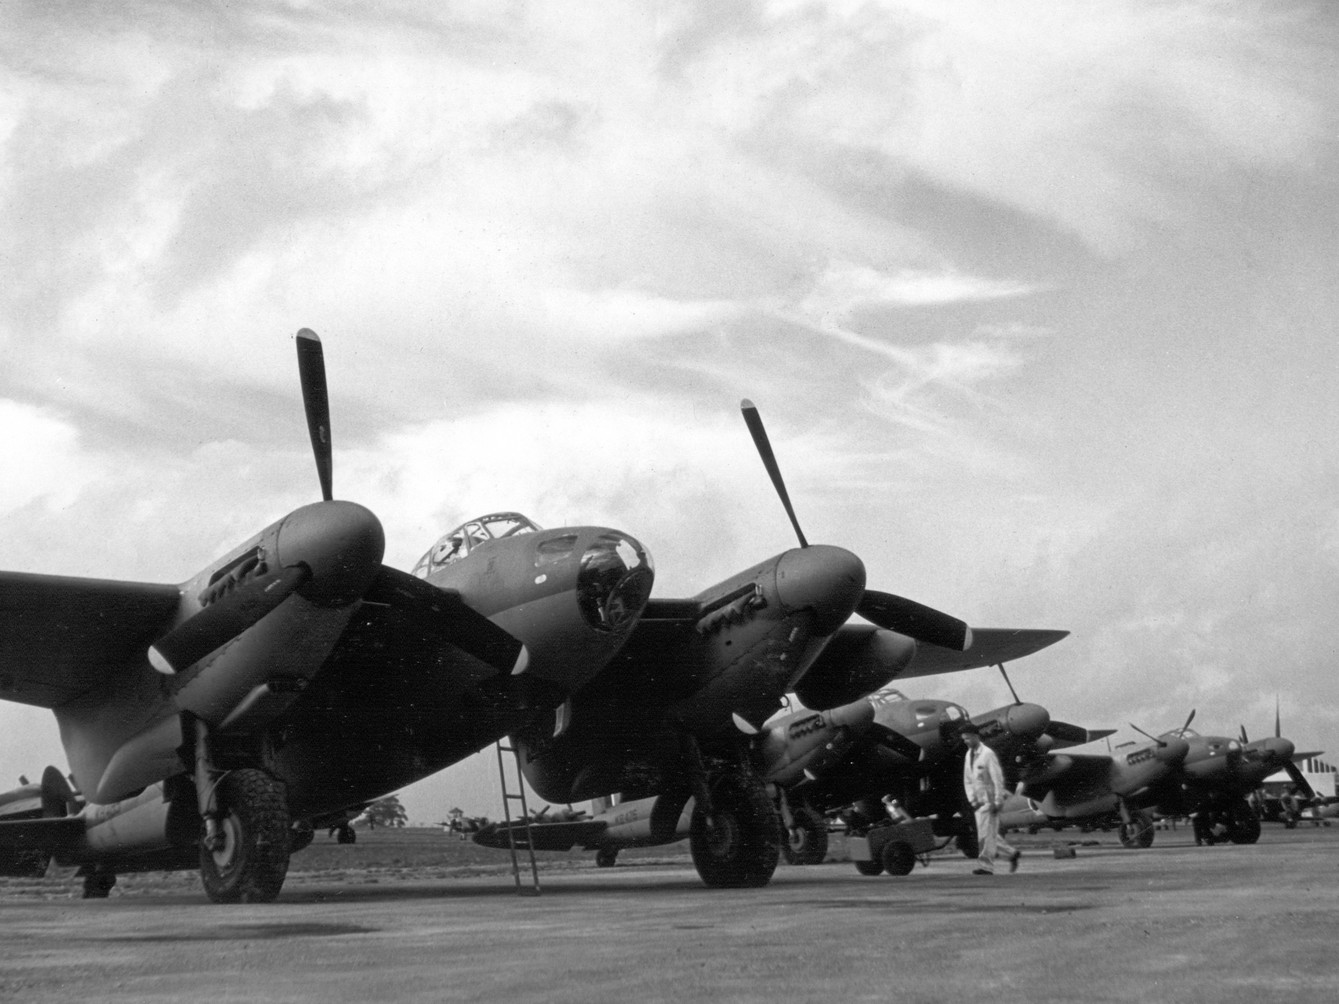 The de Havilland Mosquito